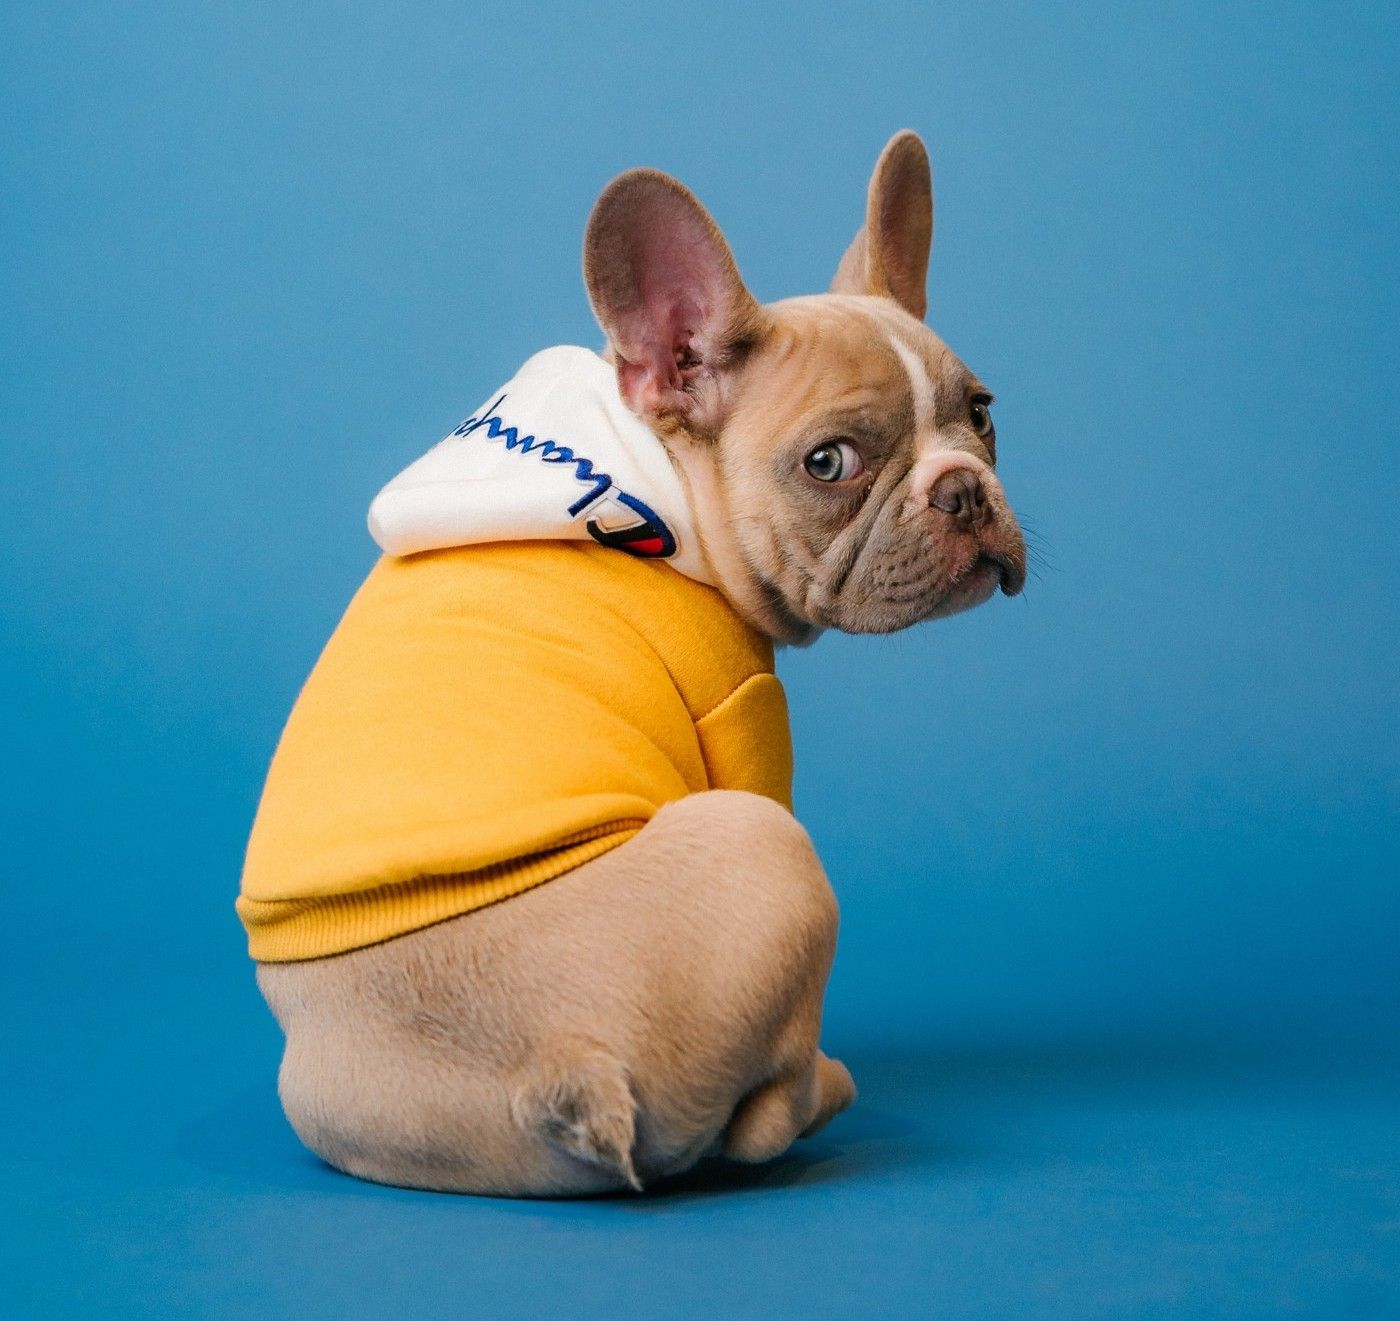 A French Bulldog puppy dressed in a yellow sweater looks over his shoulder.